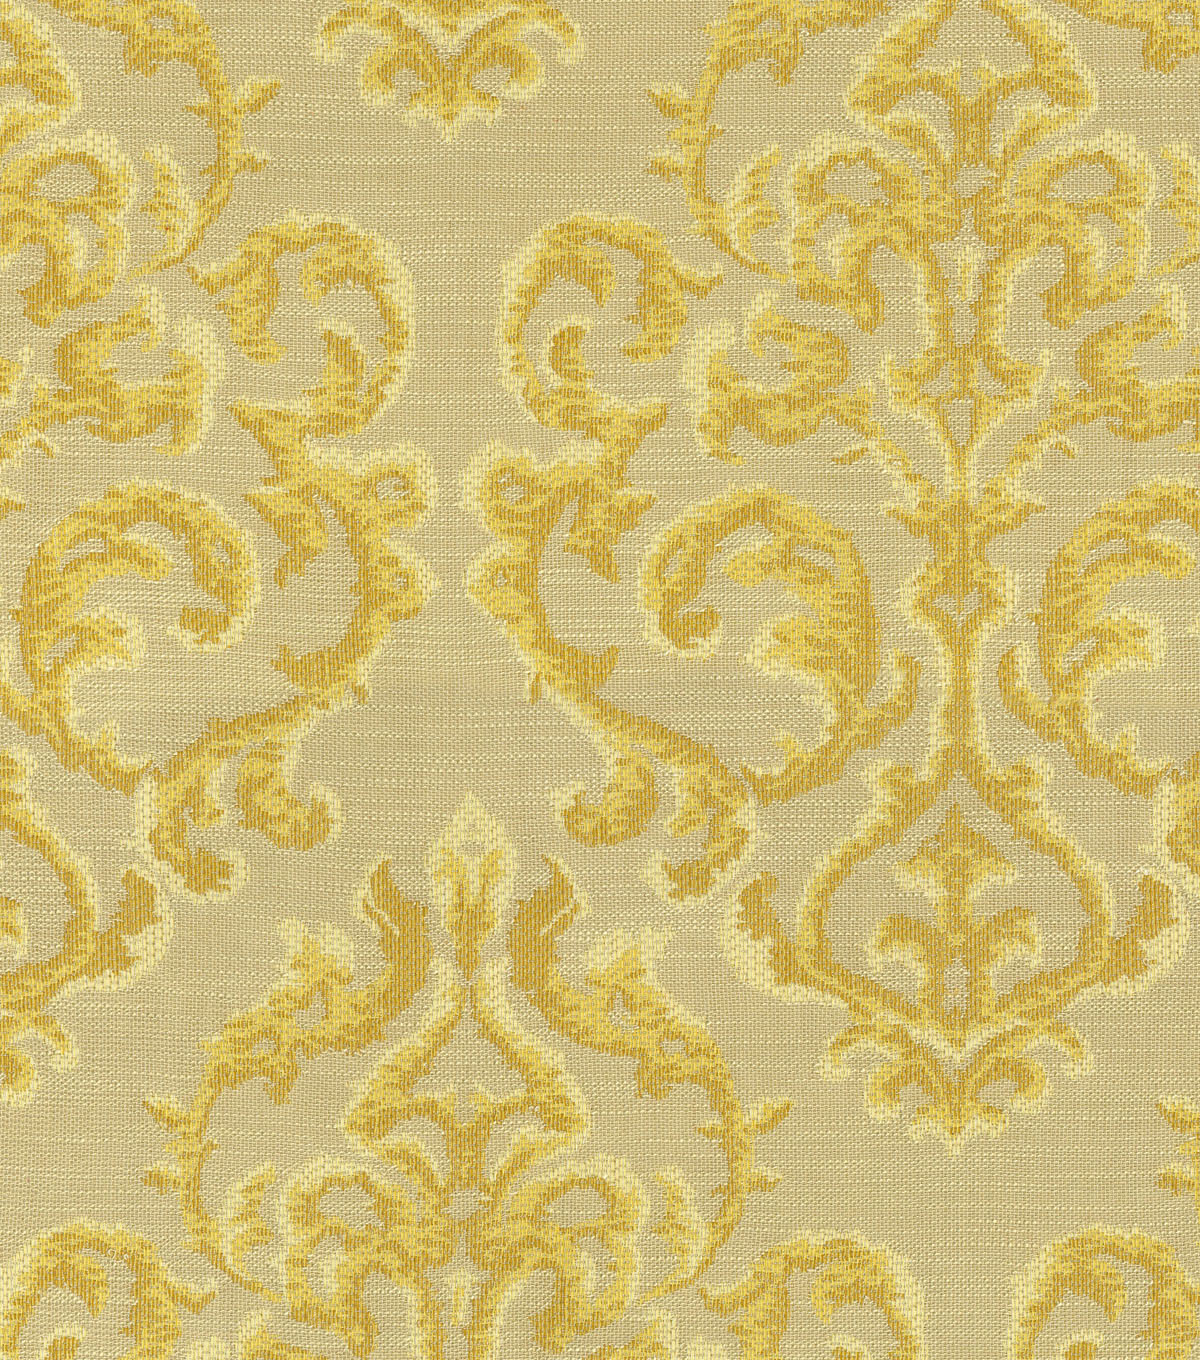 Home Decor 8\u0022x8\u0022 Fabric Swatch-Waverly Antico Oro